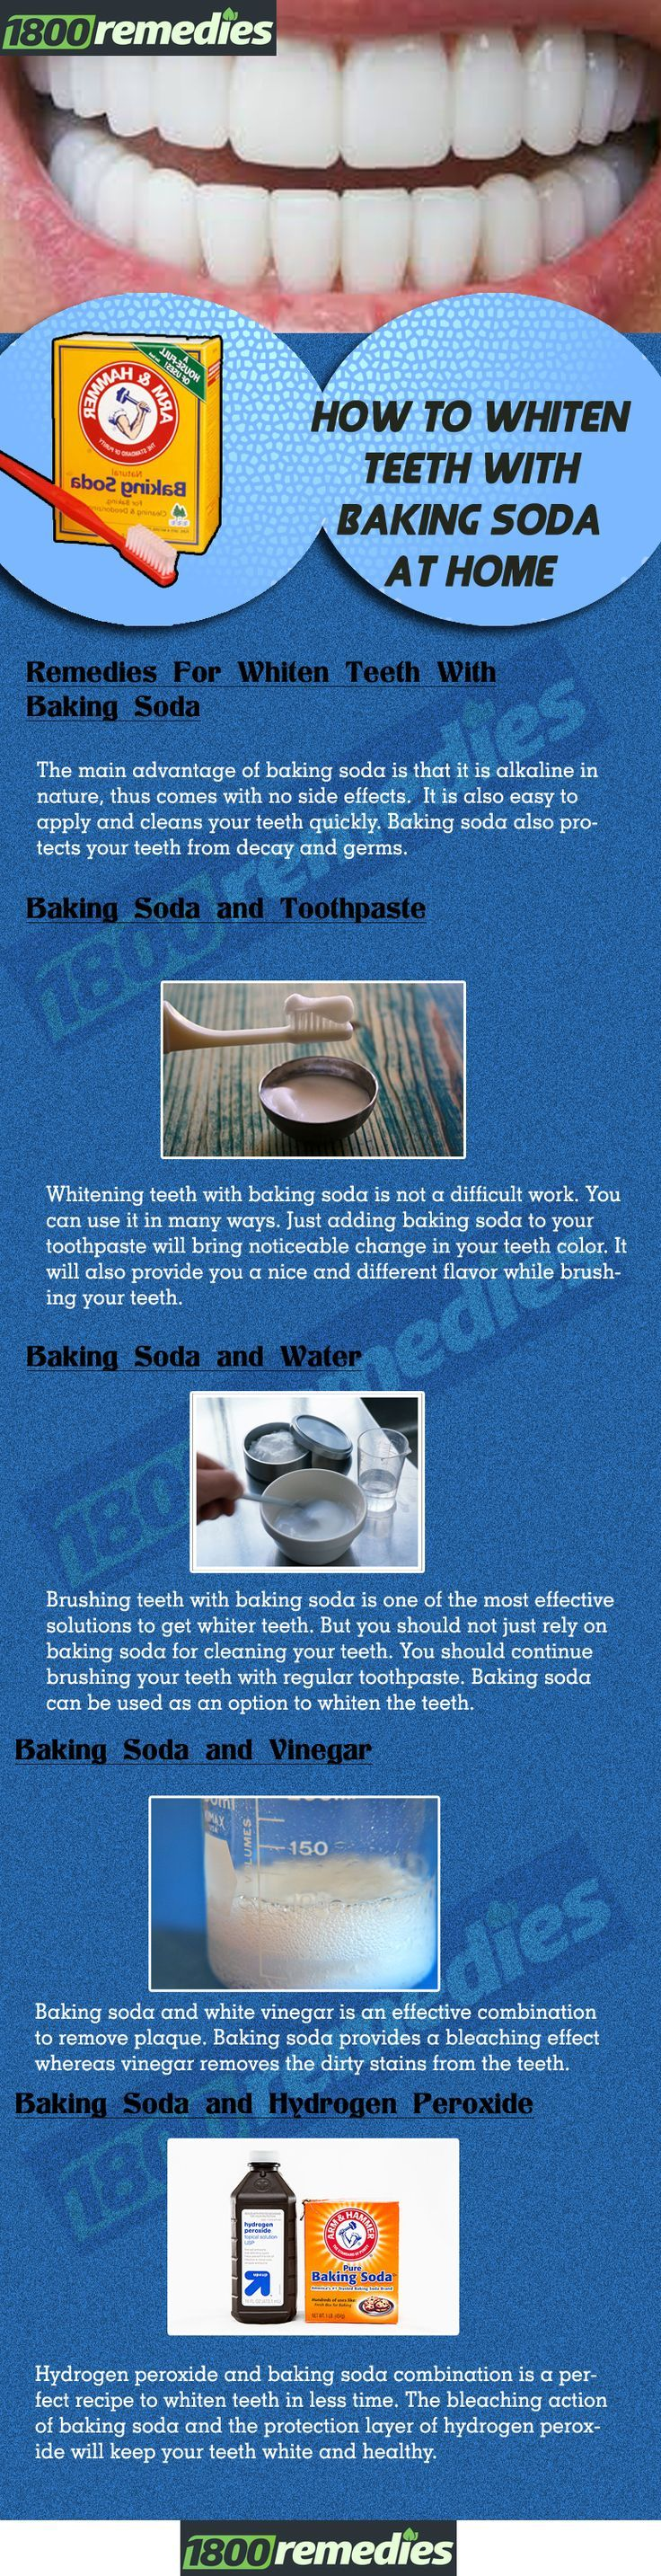 Whitening teeth with baking soda is not a difficult work. You can use it in many…